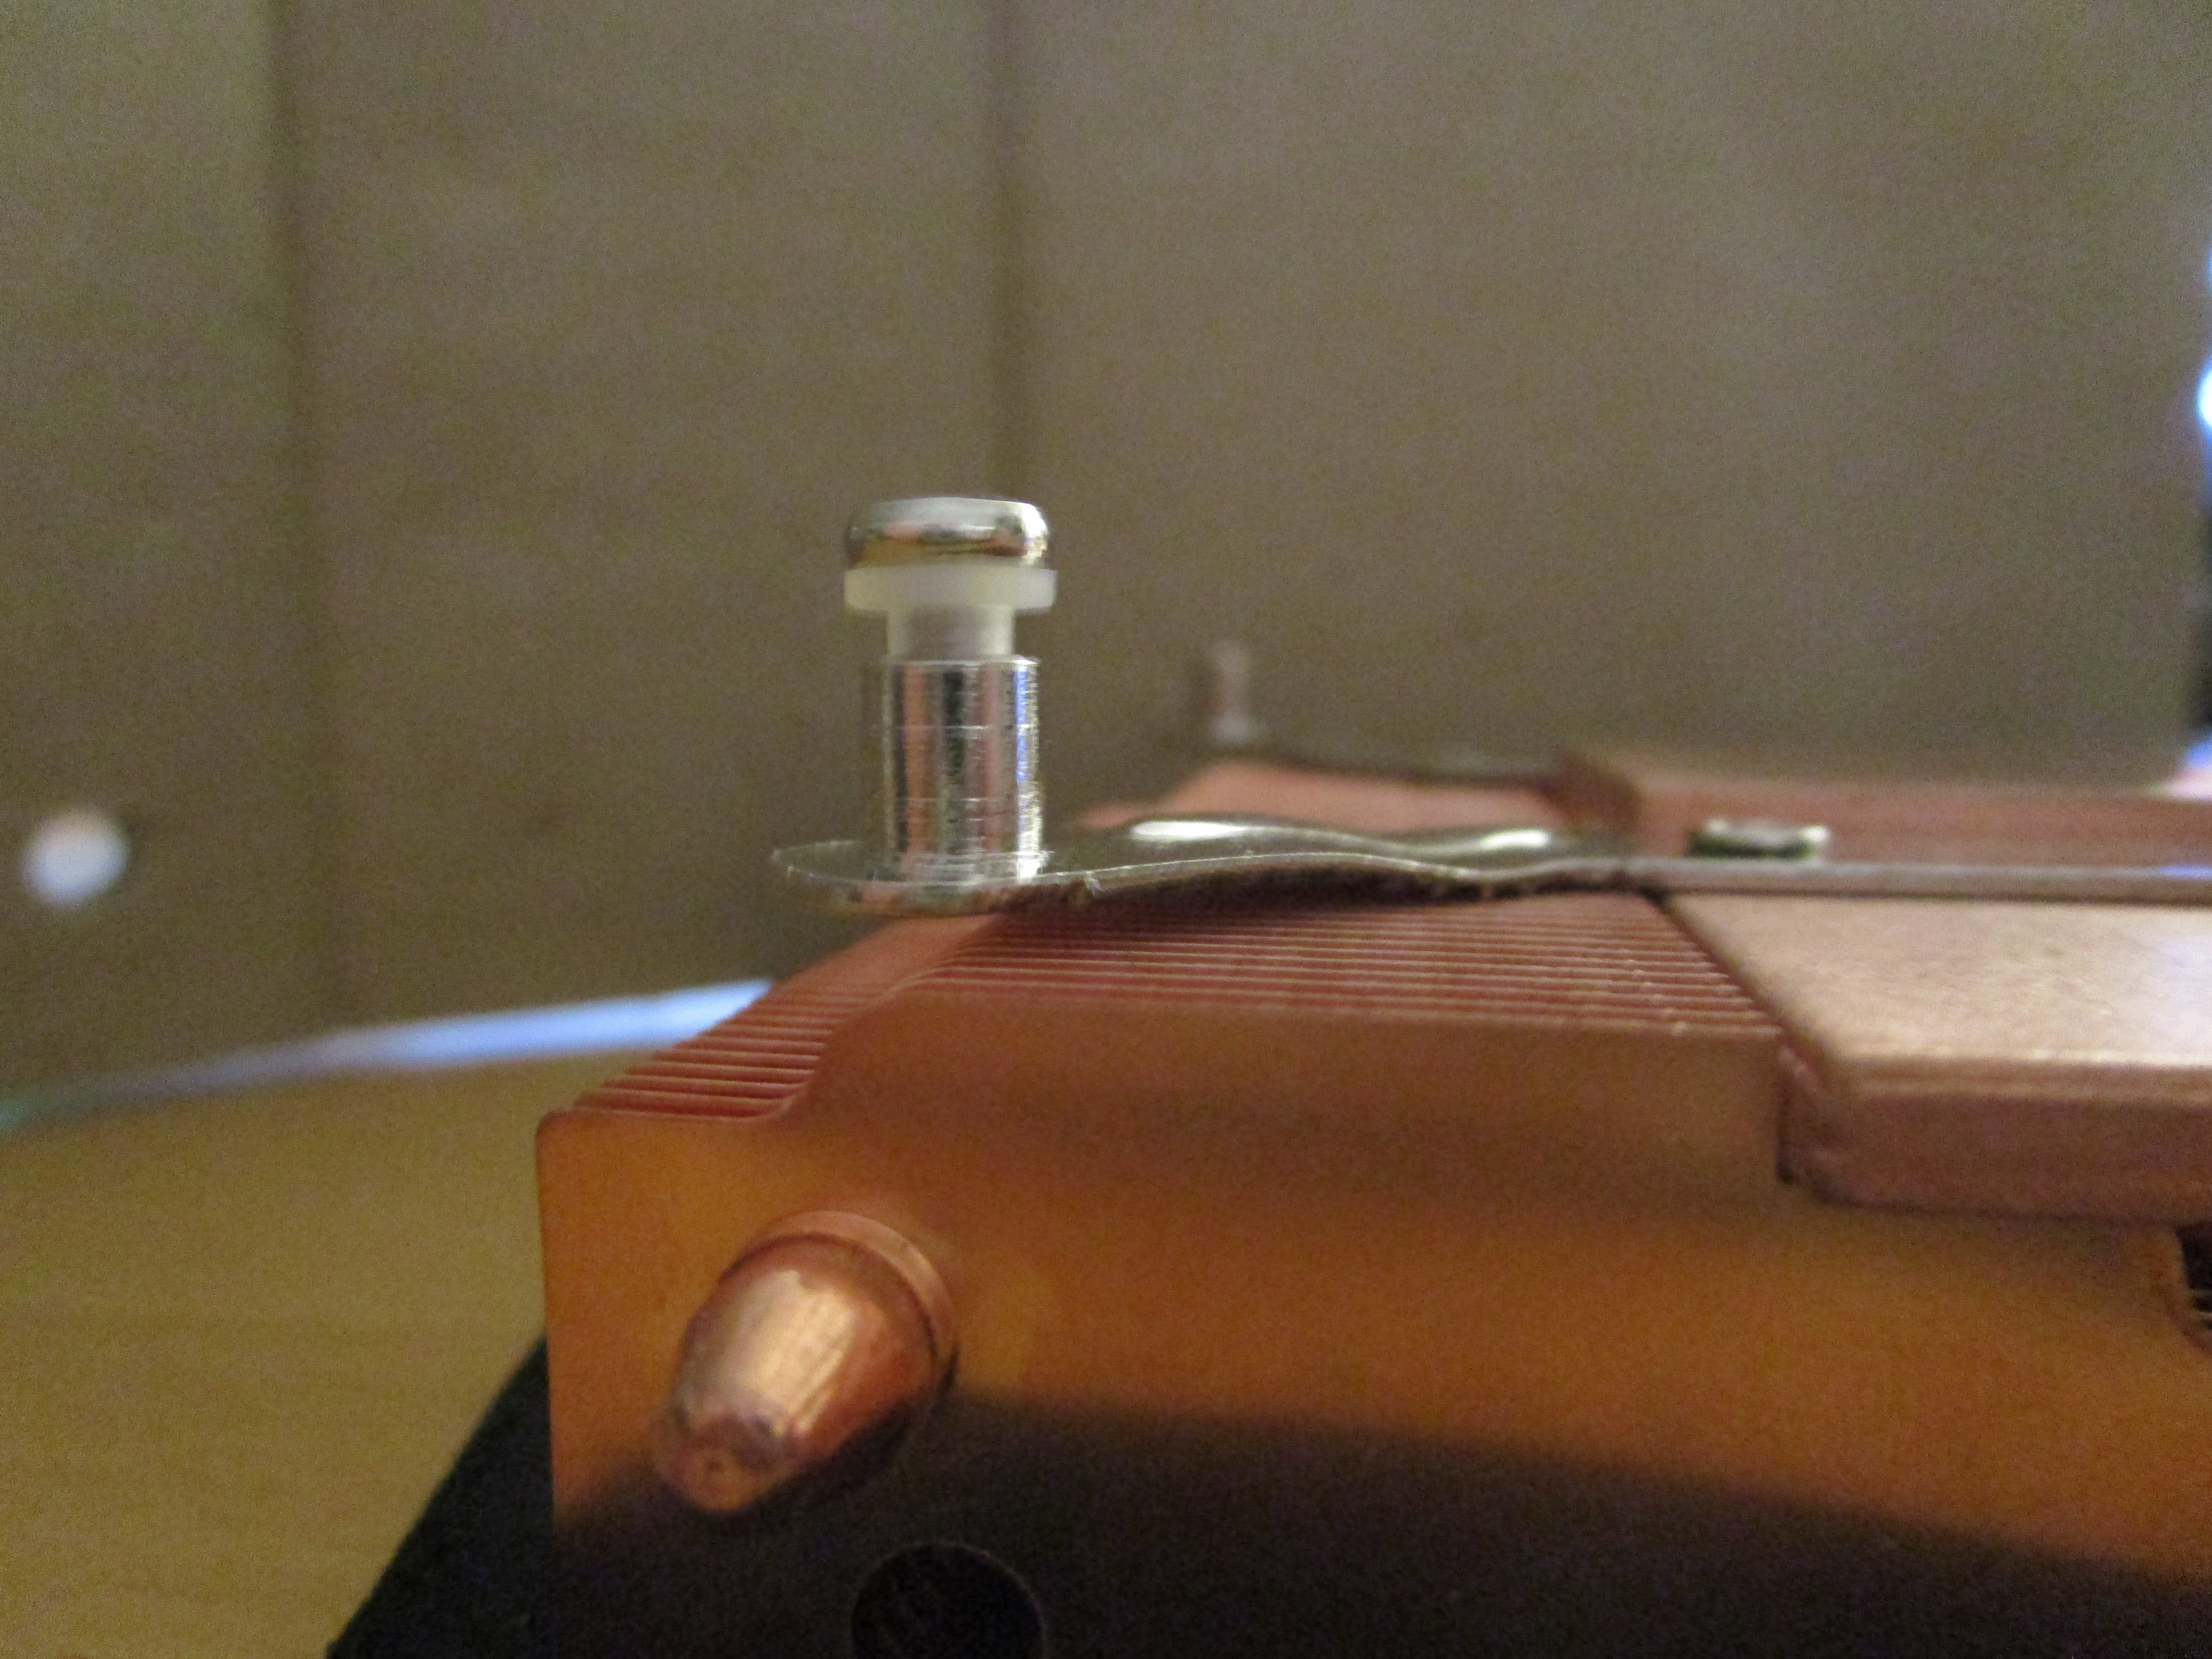 51v3: Default screws for the LP53. Not exactly the most sophisticated mounting mechanism.